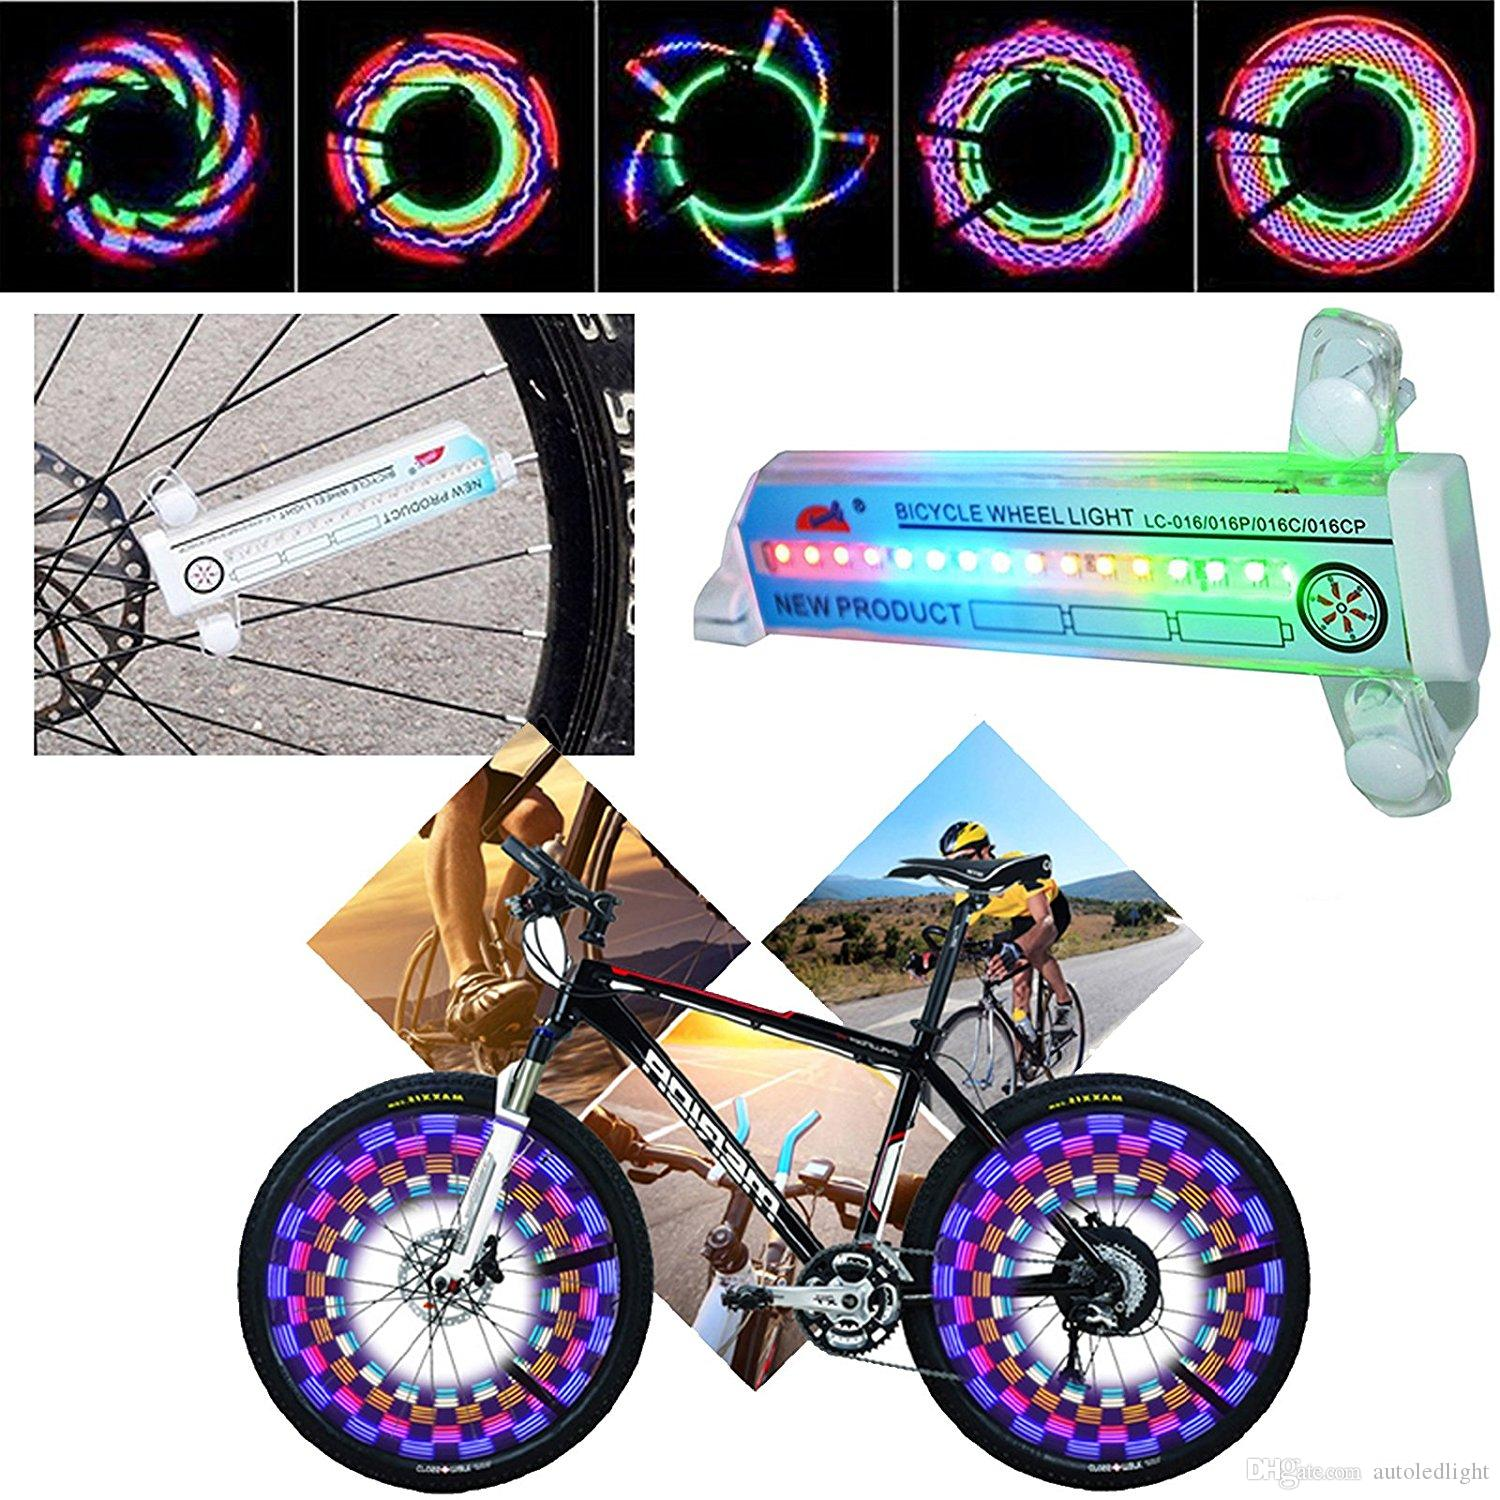 Lights Sports and Outdoors Colorful Bicycle Bike Cycling Wheel Spoke Light 32 LED pattern Waterproof Accessories